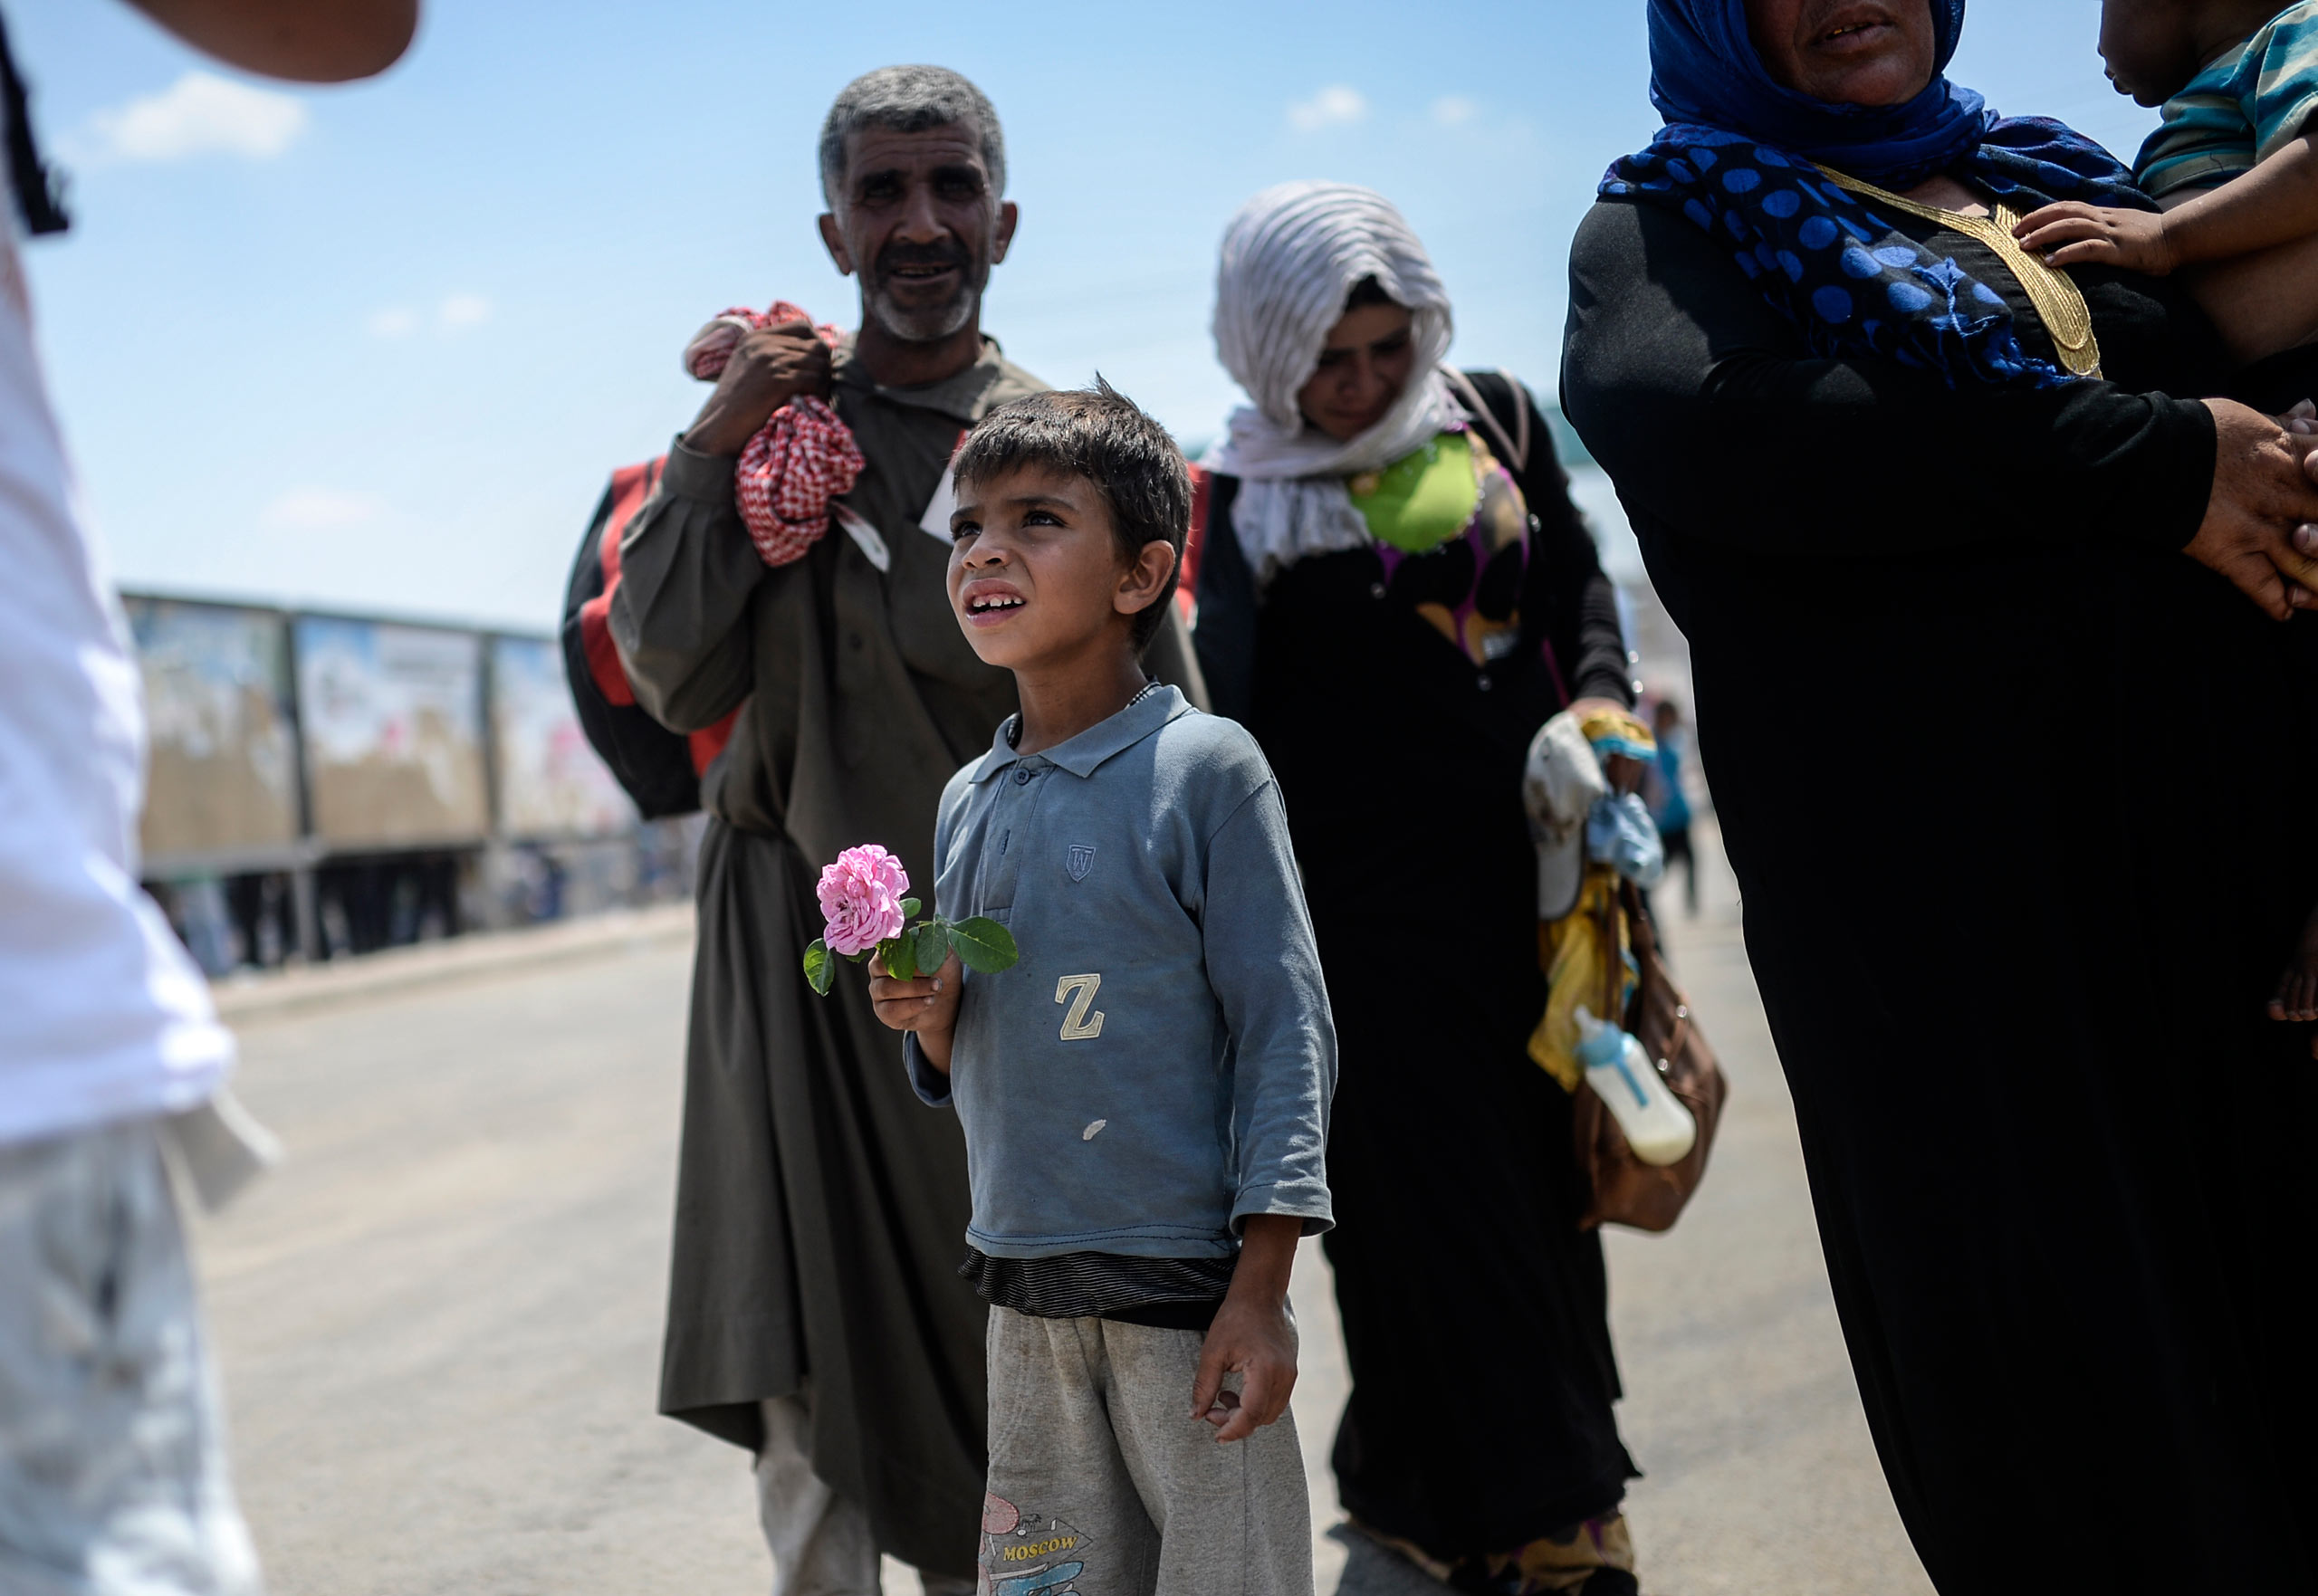 A Syrian boy holds a rose after he arrives at Turkey through the Turkish crossing gate in Akçakale, in the Şanlıurfa province. June 15, 2015.